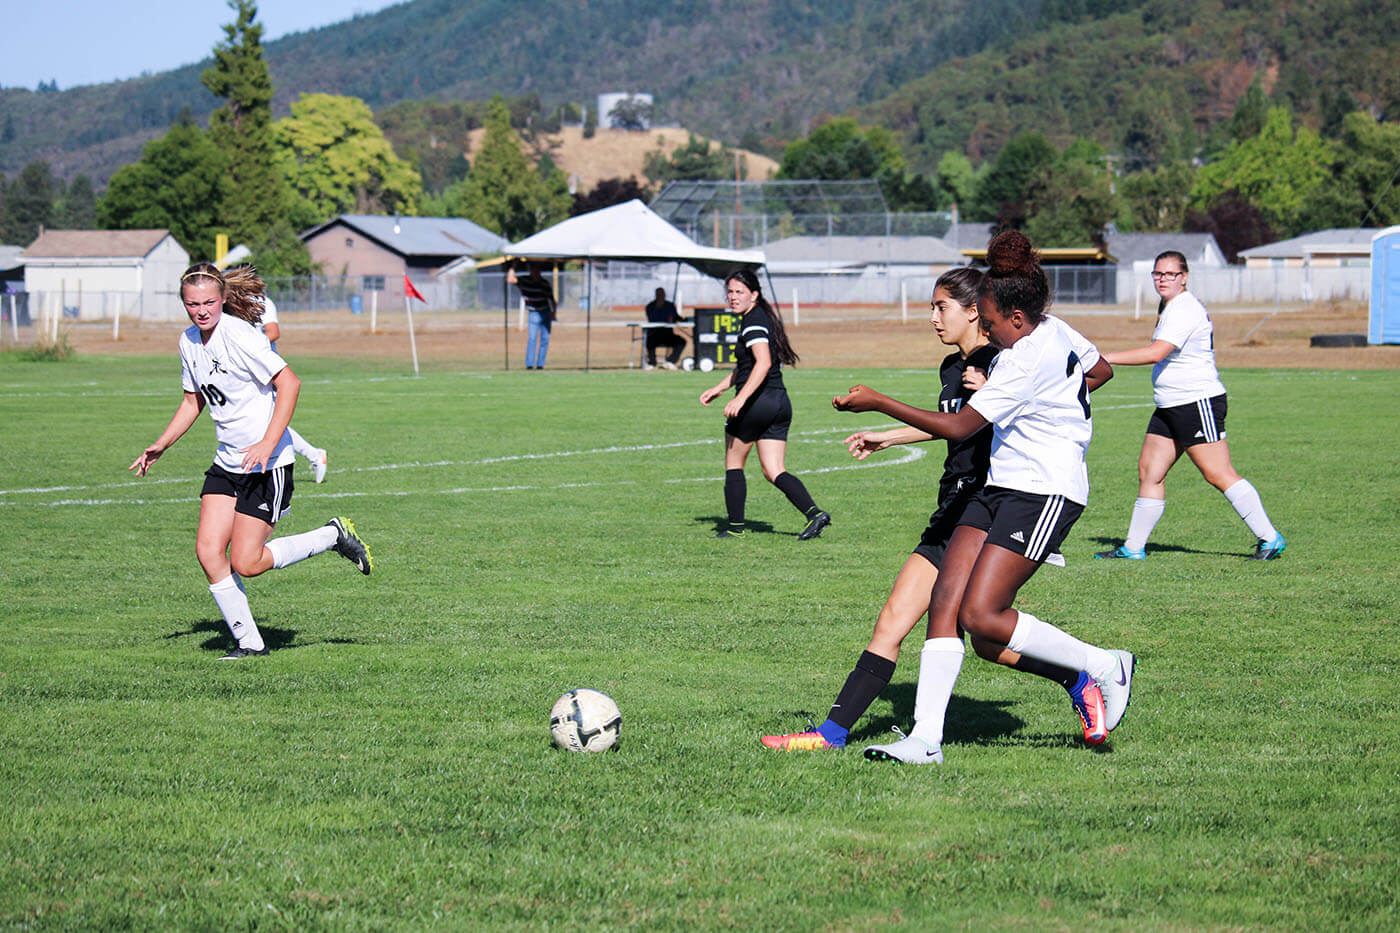 American boarding school, fall sports, include girls' soccer, player runs next to opposing player, to take soccer ball